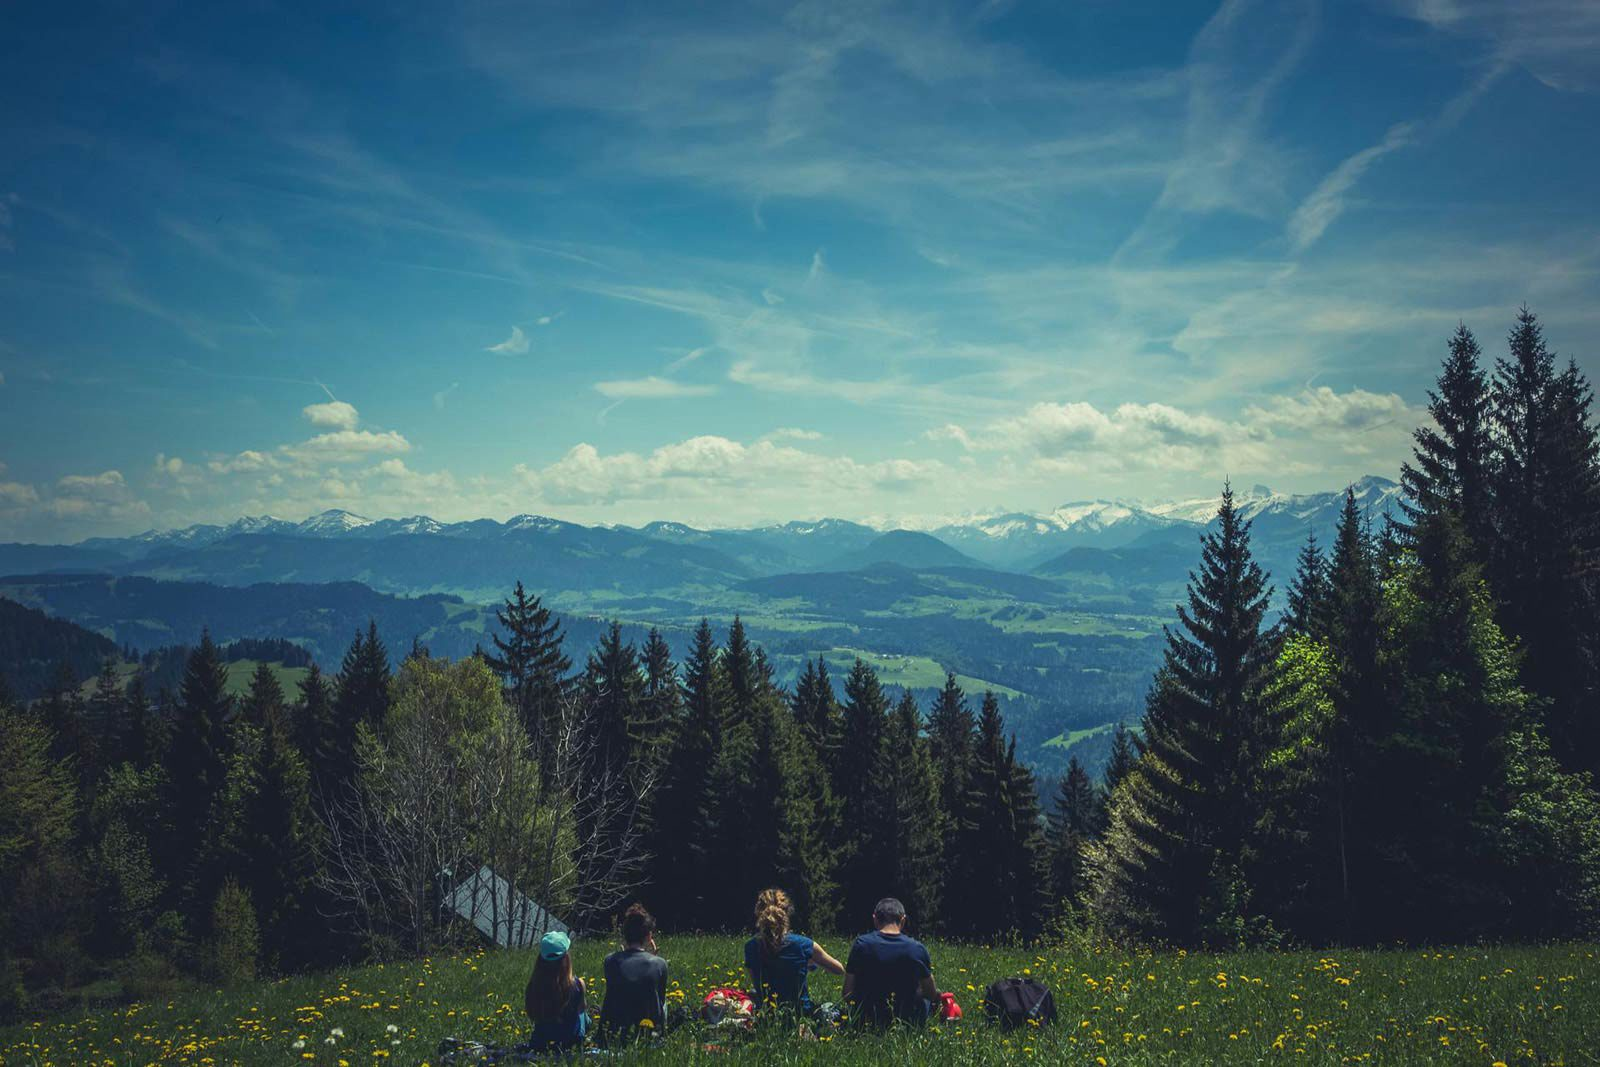 Four people sitting in field near trees looking at mountain view.